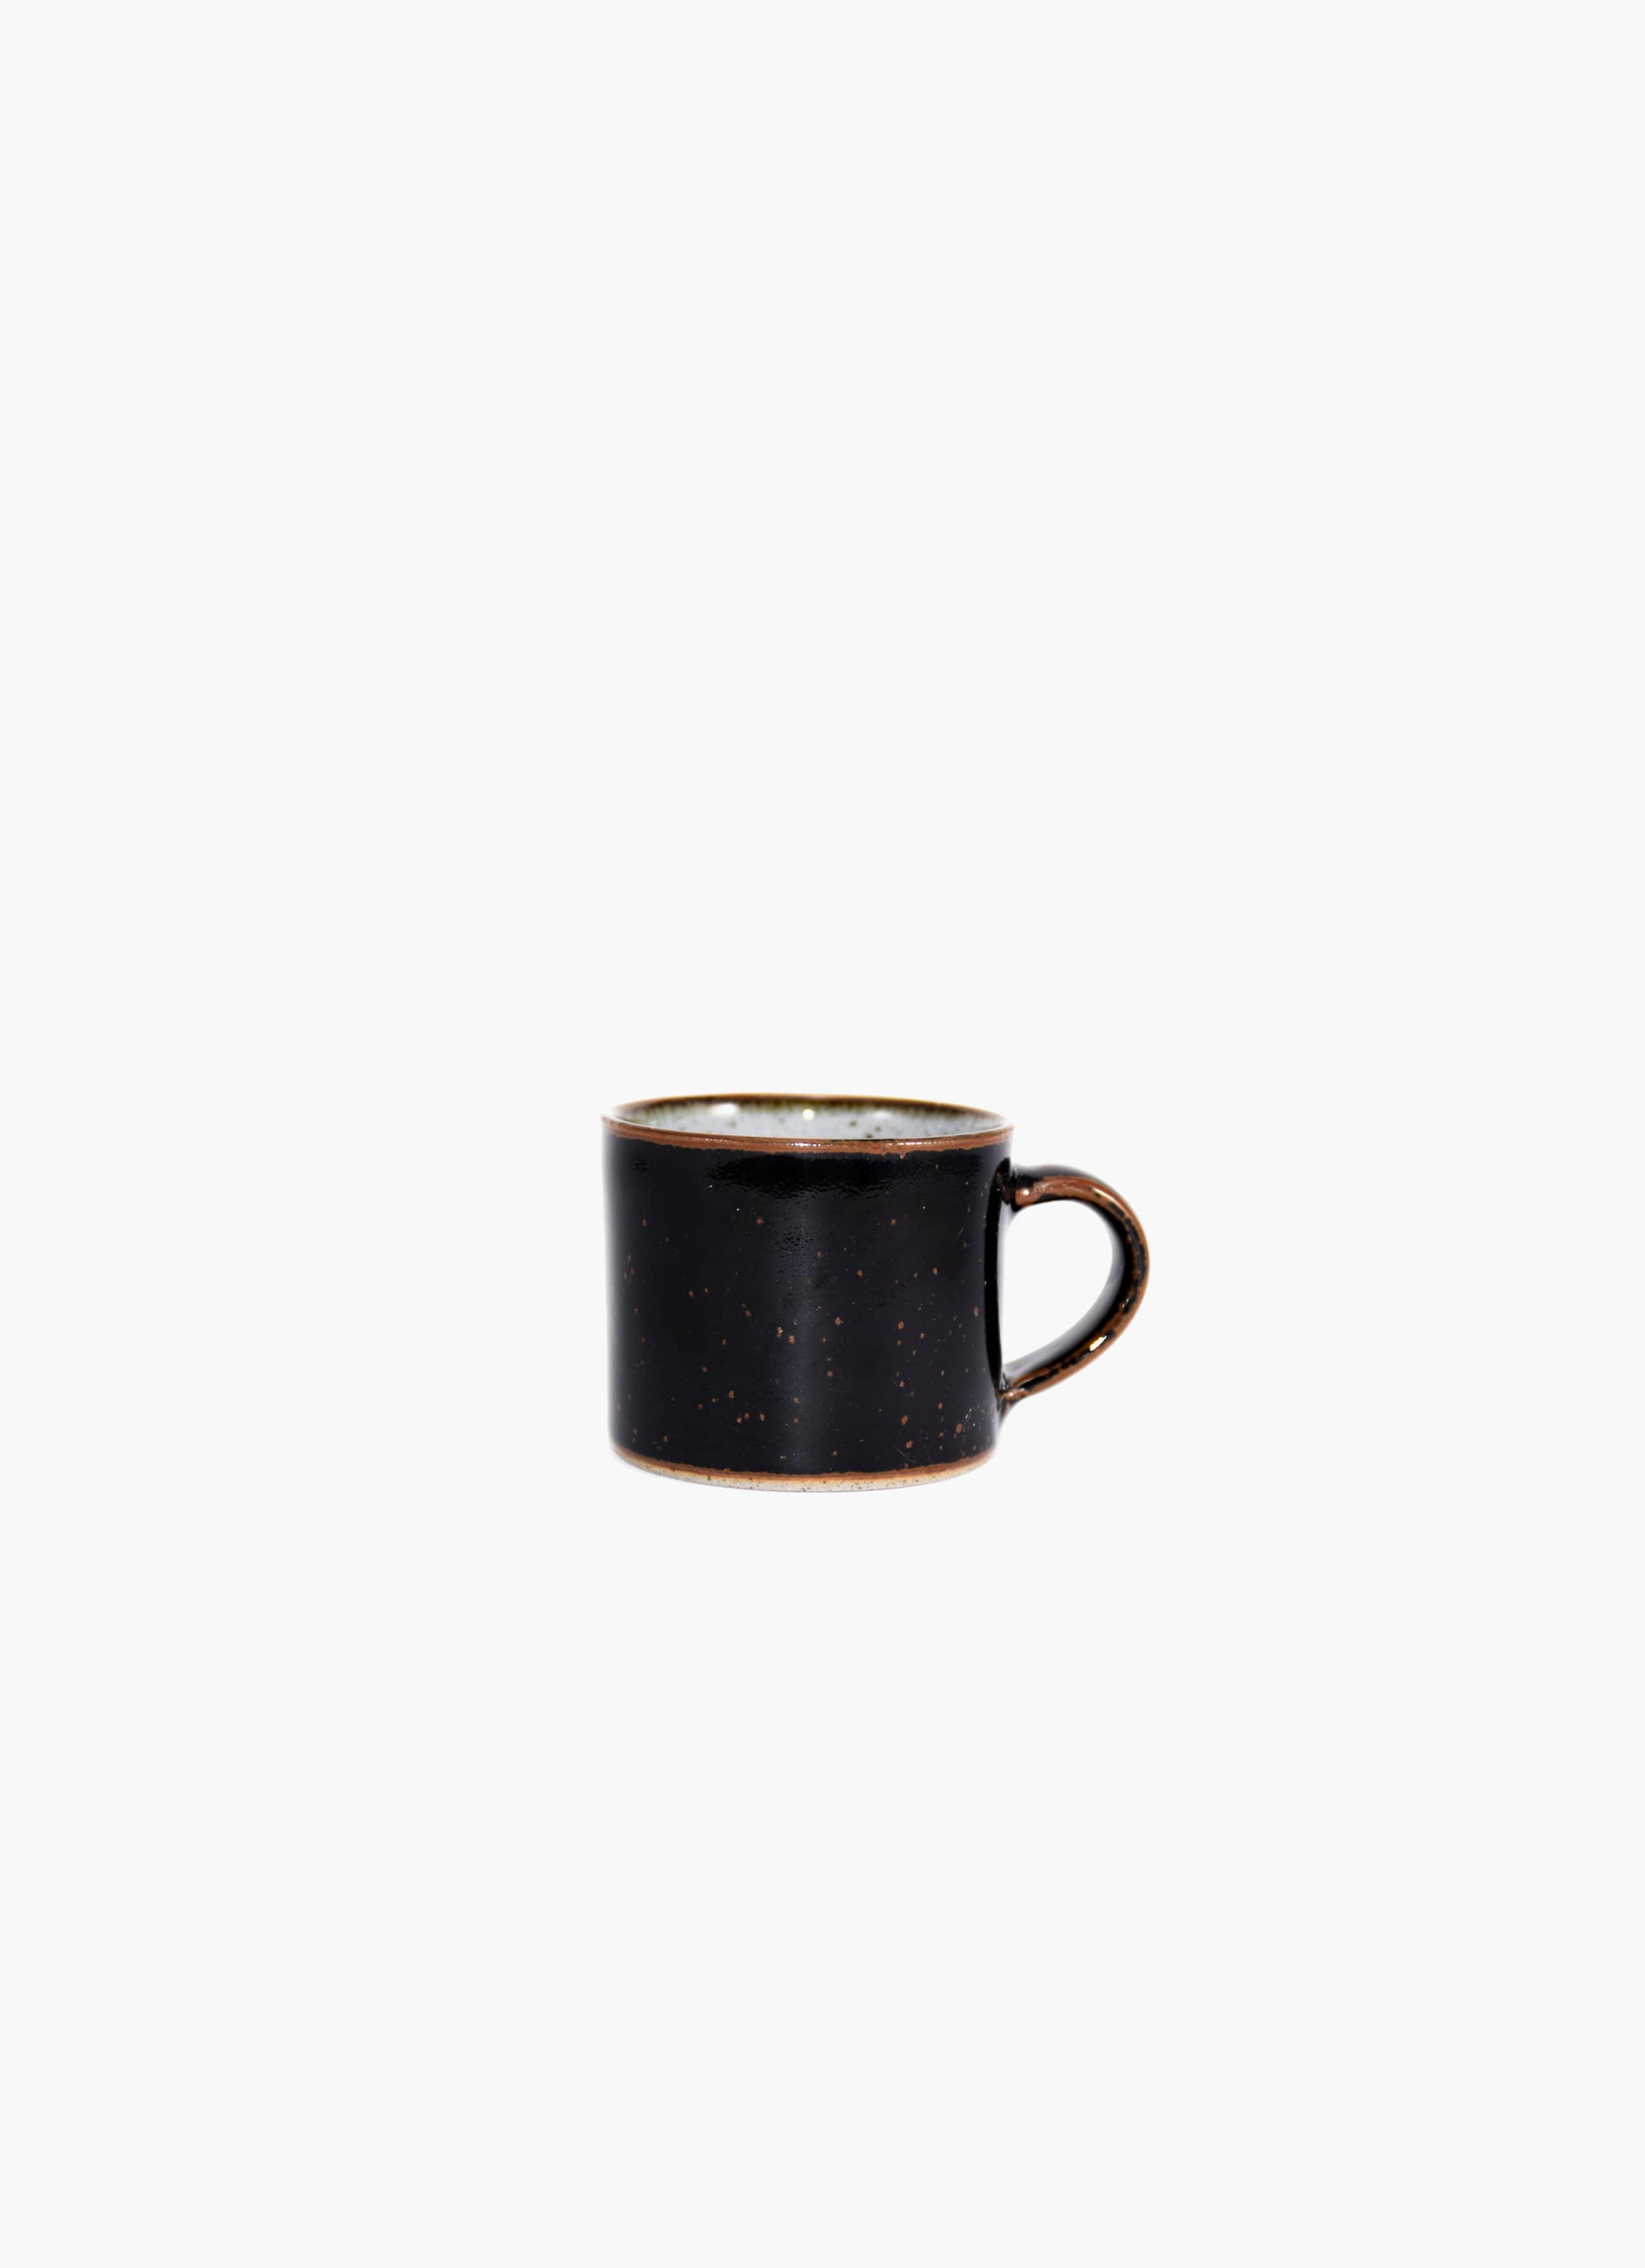 James and Tilla Waters - Thrown Stoneware - Espresso cup - Tenmoku